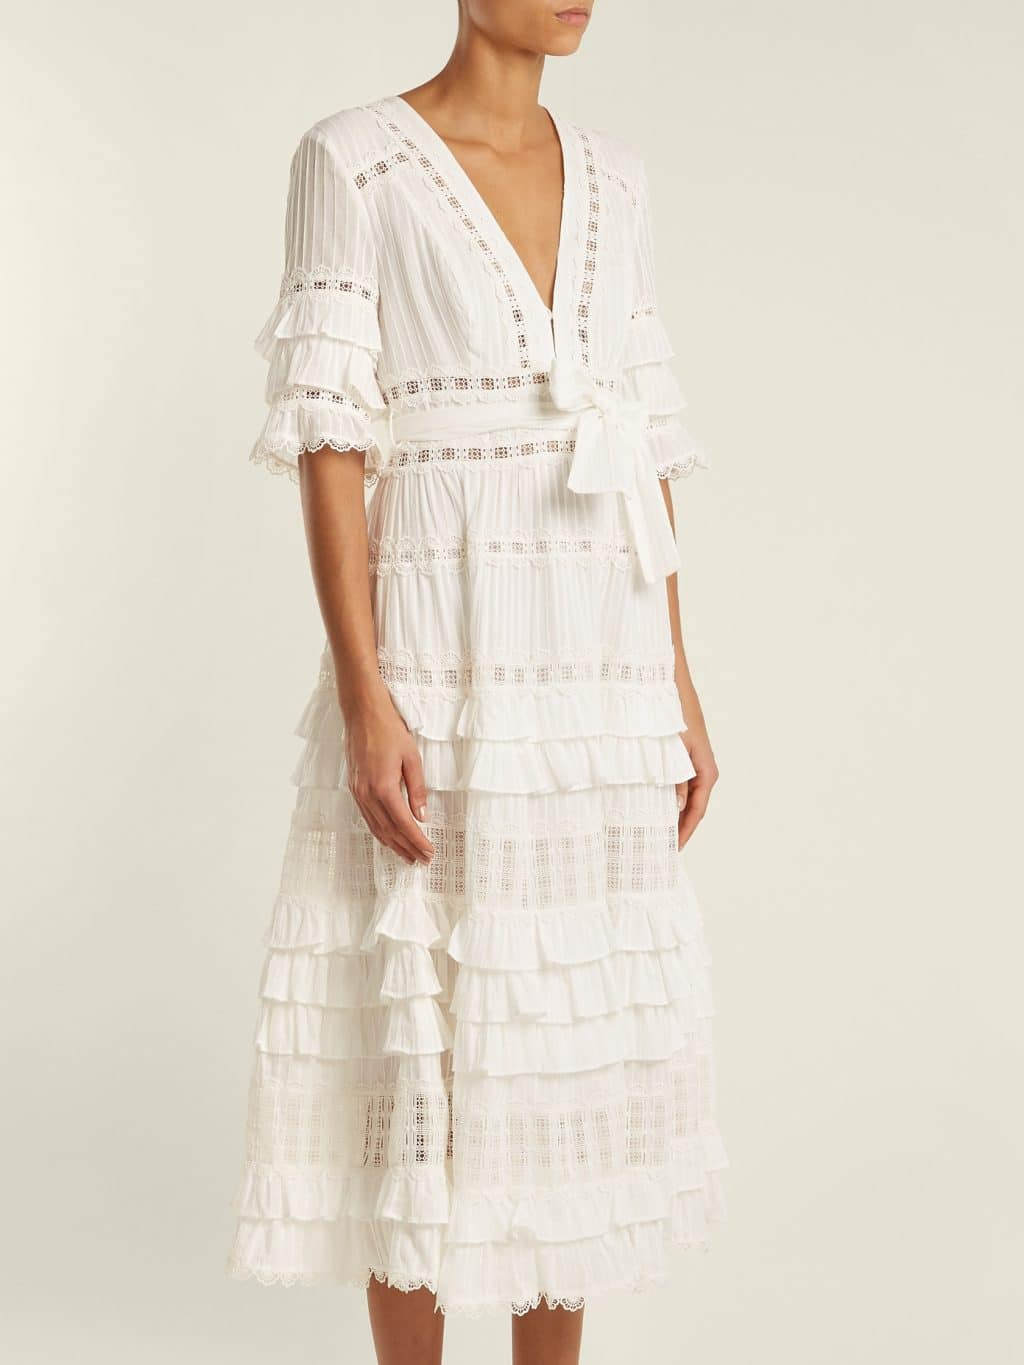 Zimmermann Corsail Lace Insert Cotton Ivory Dress We